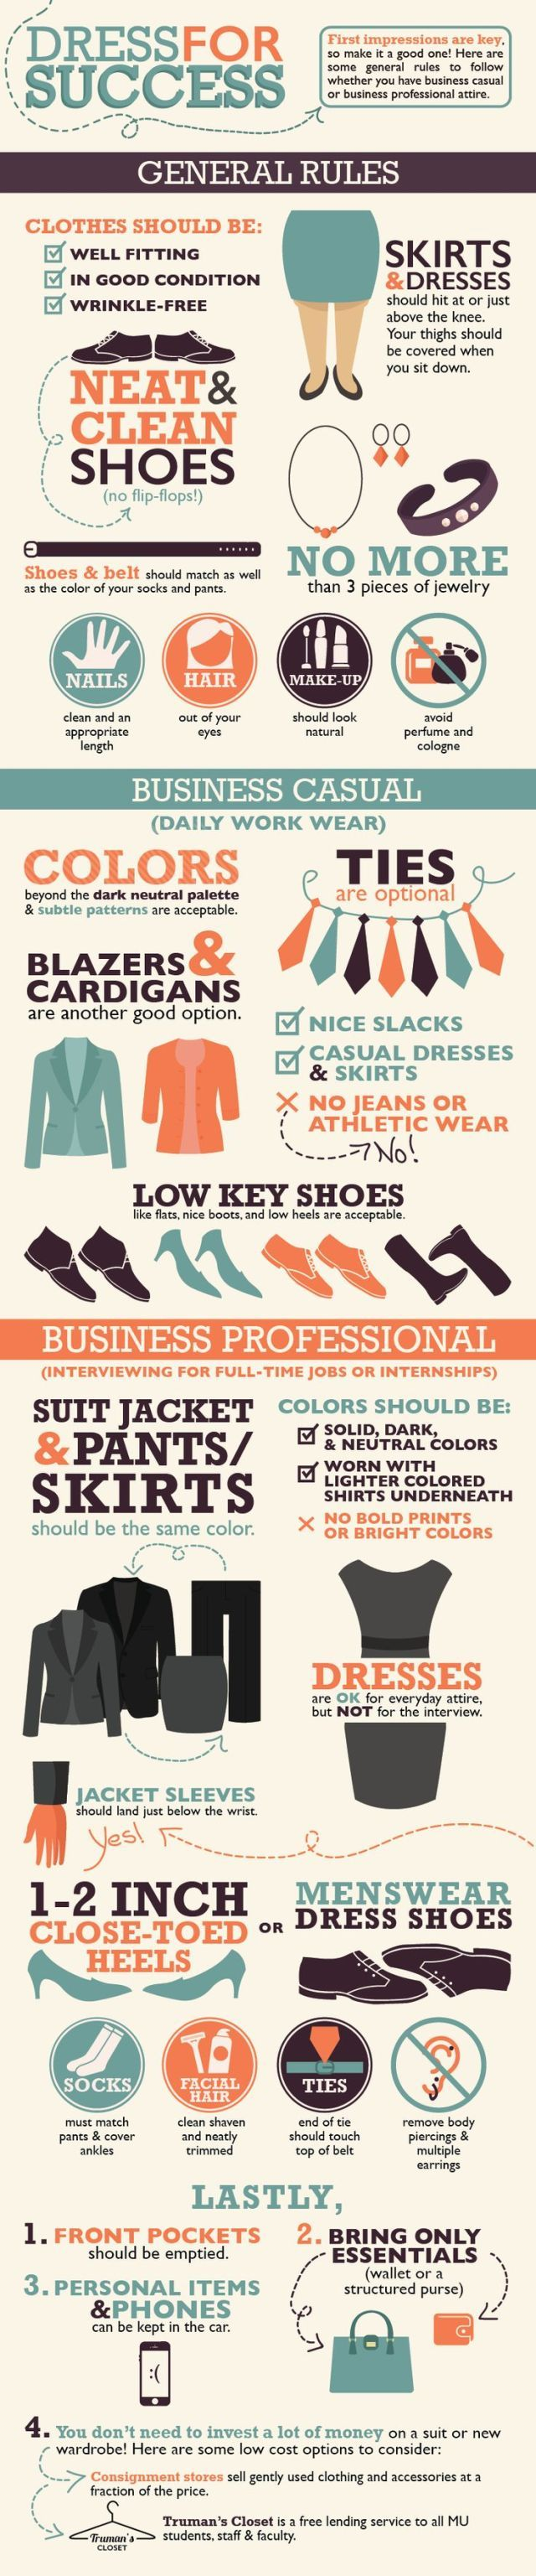 infographic : Dress for Success - this is business casual as first outlined by the various Human Resources of a number of companies. - Bear in mind this is when it was casual Friday's only - it was full costume business as usual M-Th. If you met with clients in person, you were informed that these meetings were to be scheduled for M-Th. Friday you worked the phones, did paperwork, caught up on filing and such. If a Meeting had to be held on Friday, you came in full business dress.